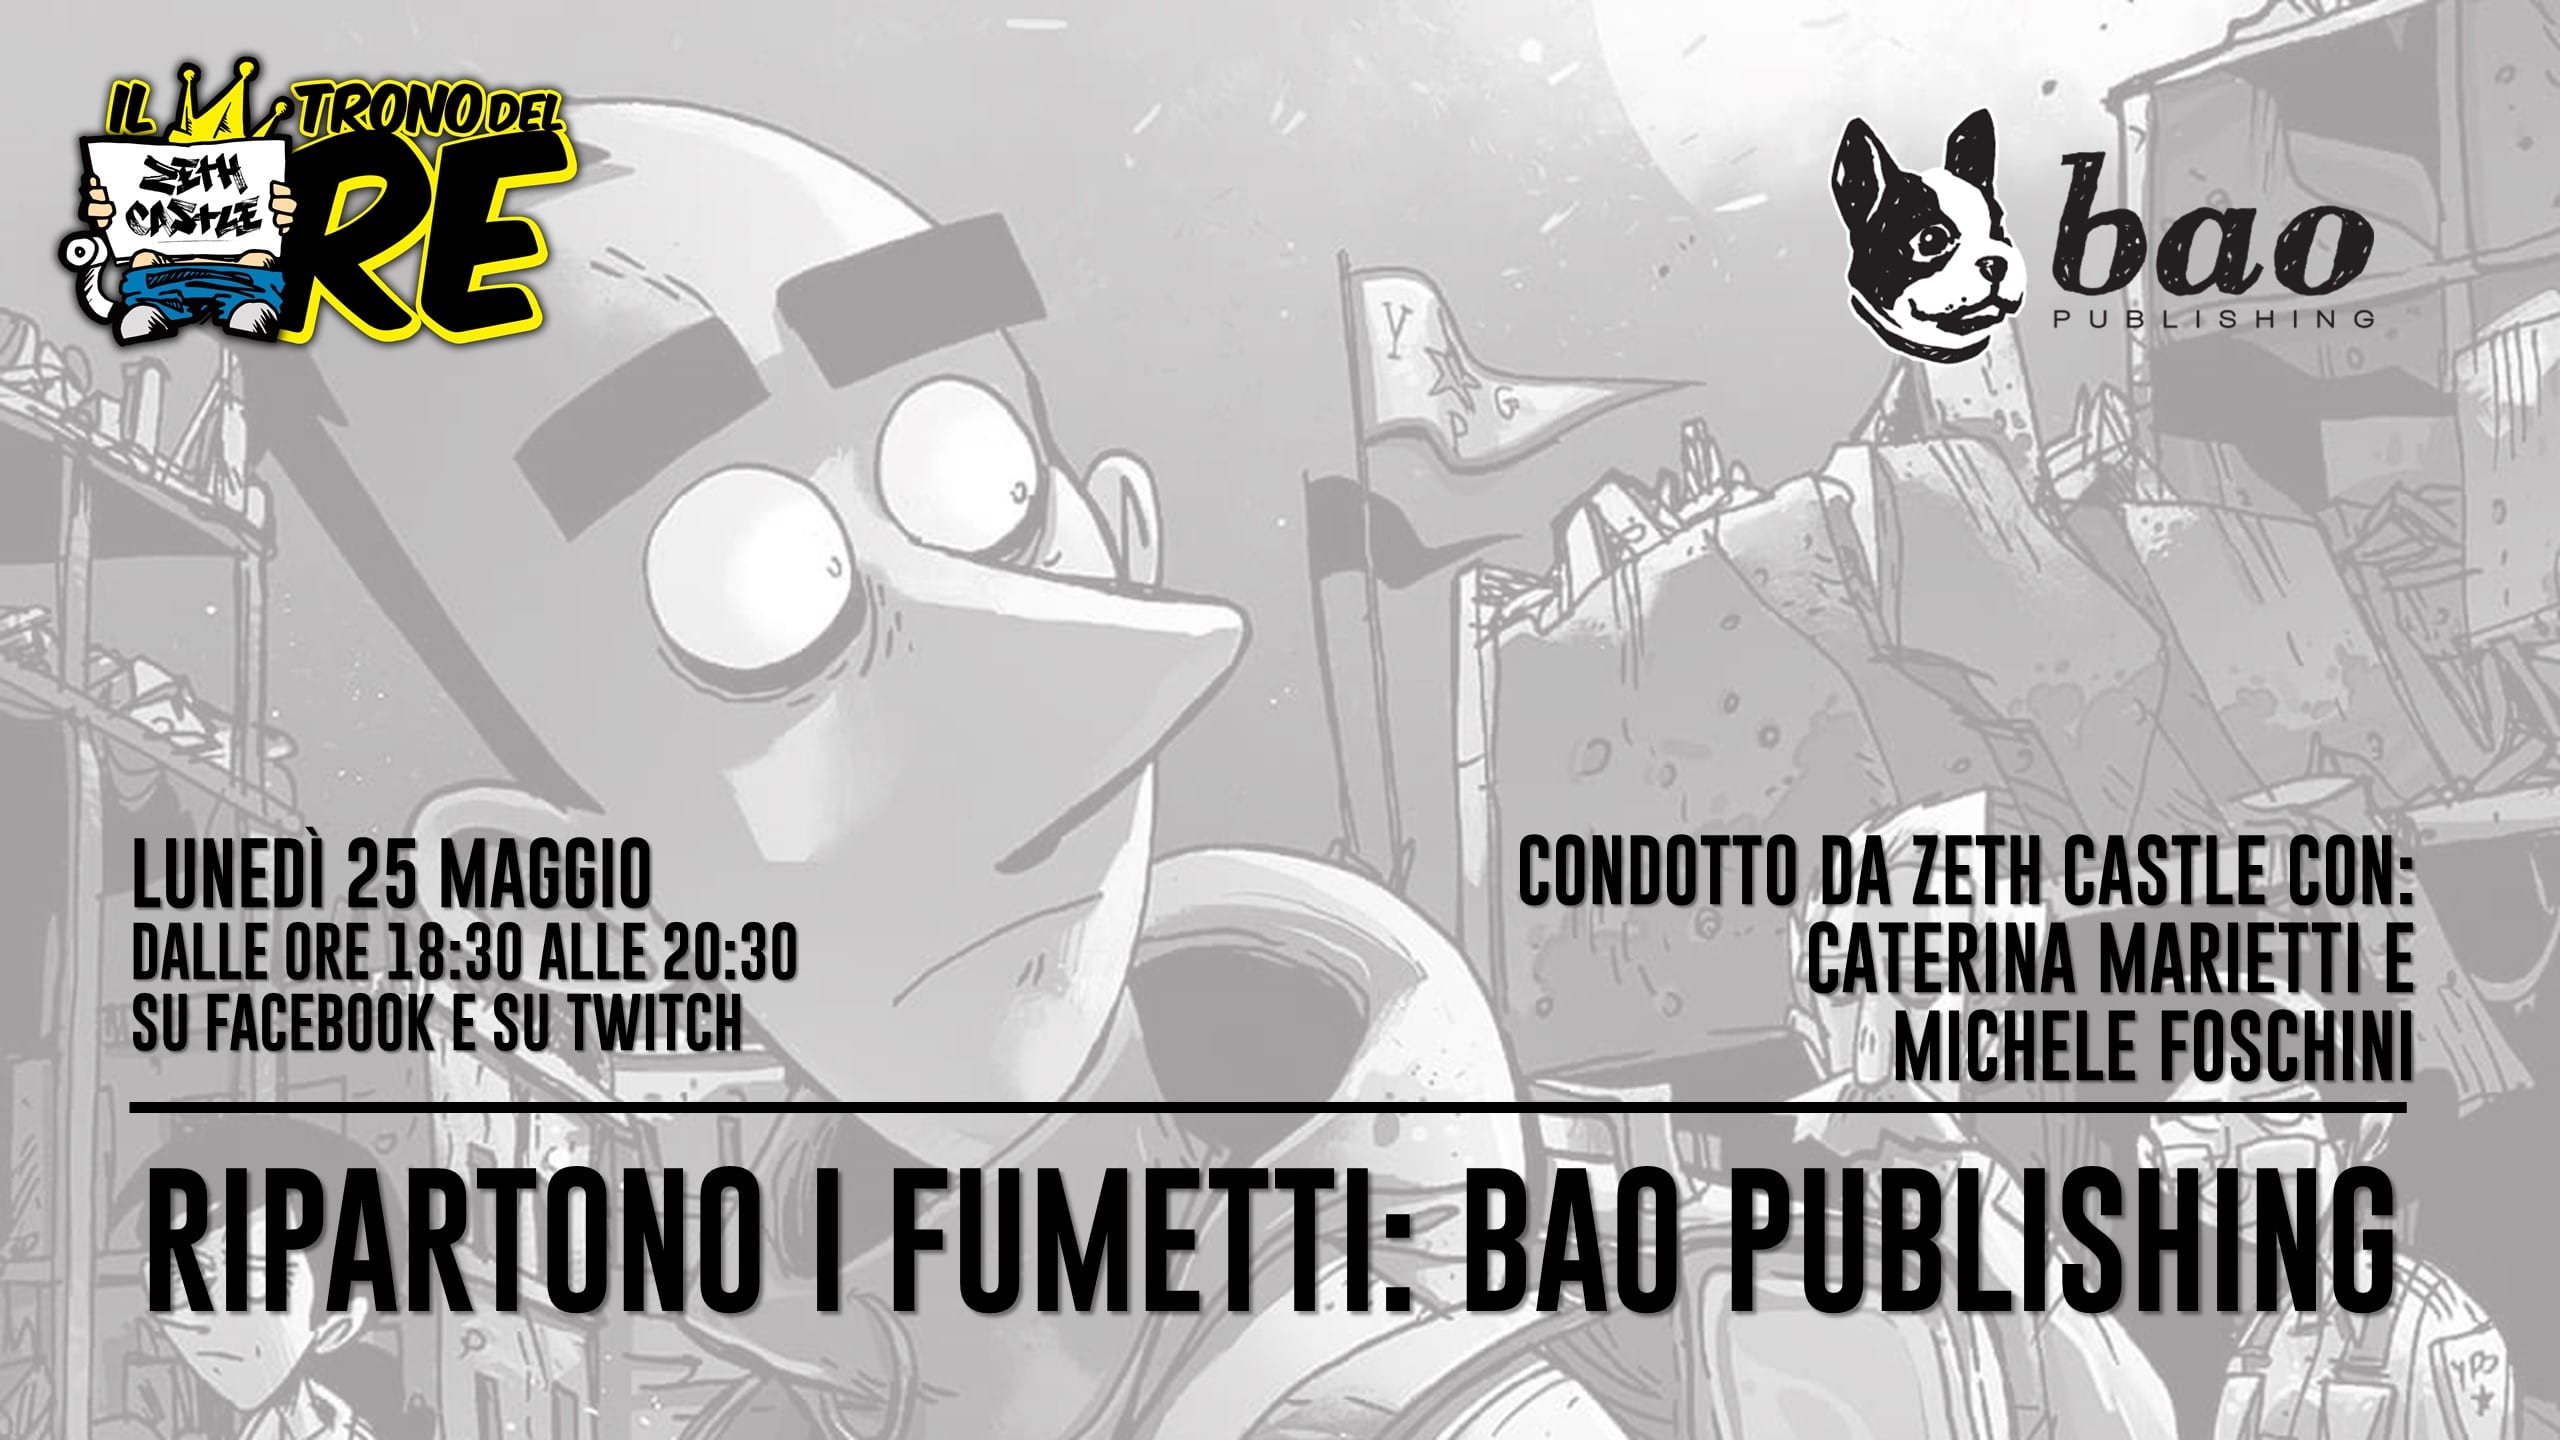 Il Trono del Re: ospite Bao Publishing